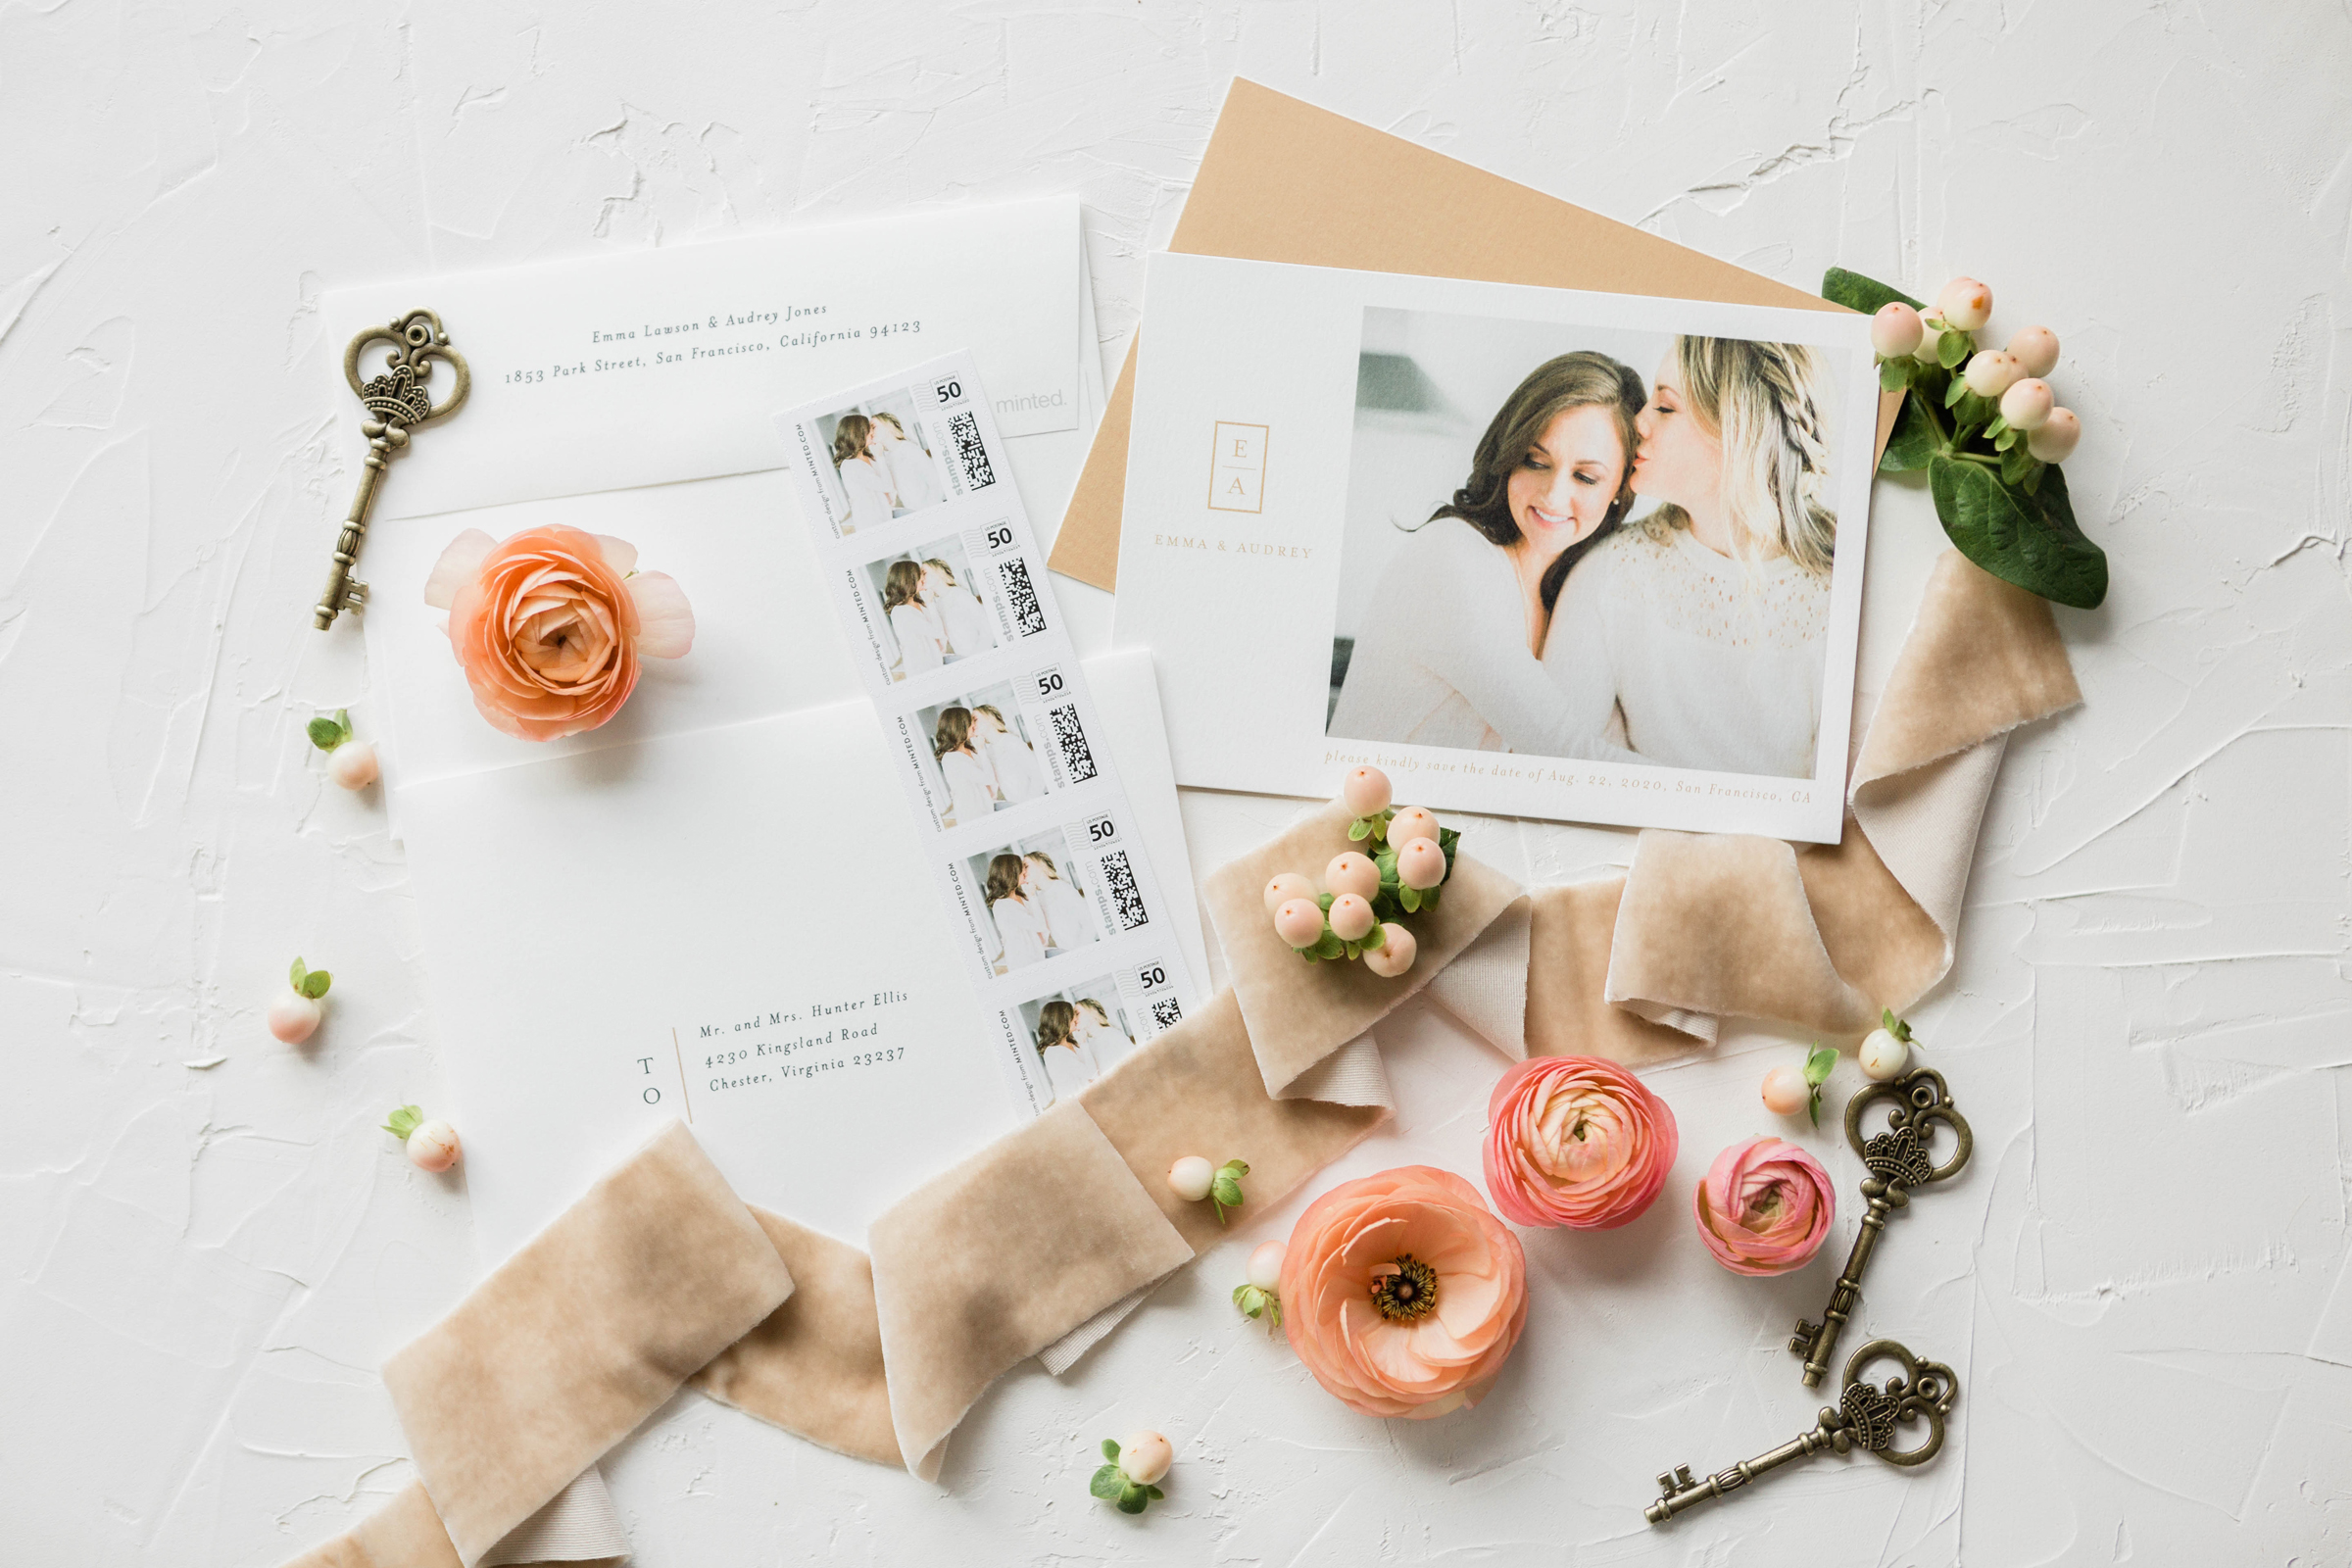 Minted Simple Save the Dates - At Home Engagement Photos - The Overwhelmed Bride Wedding Blog